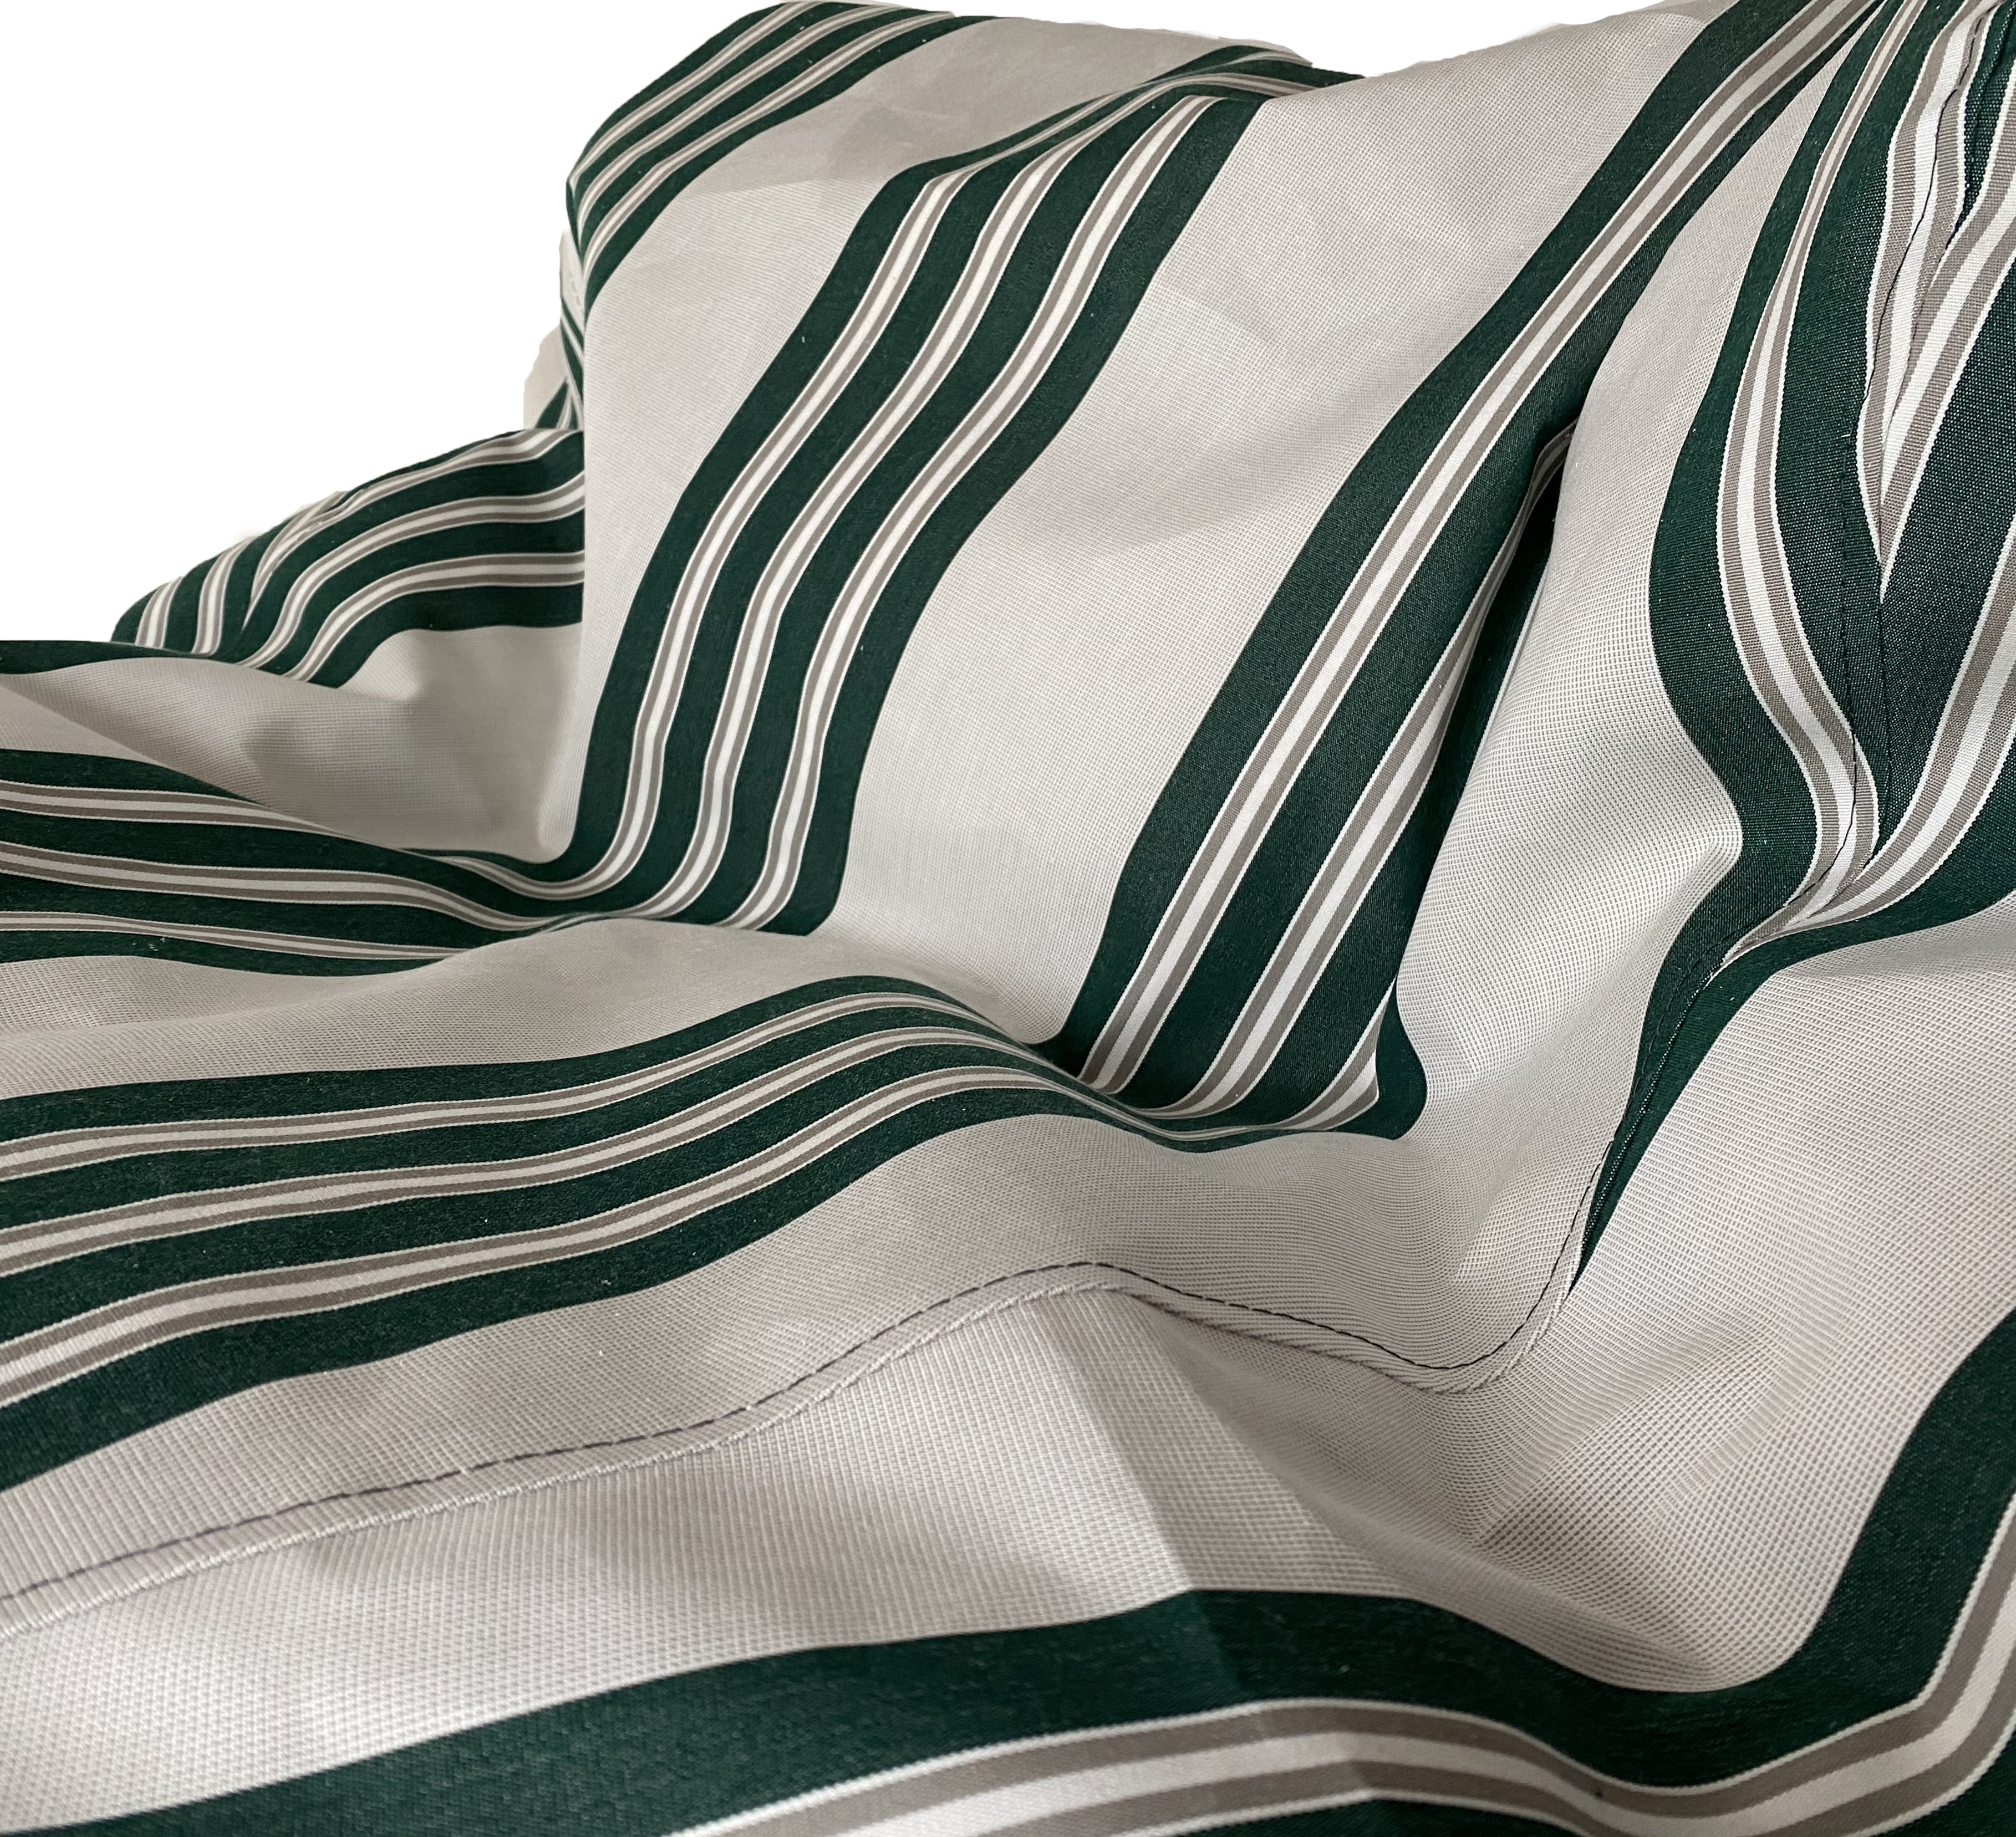 Sunbrella Outdoor Deluxe Vintage Edition Bean Bag In Off White with Bottle Green and Tan Stripe